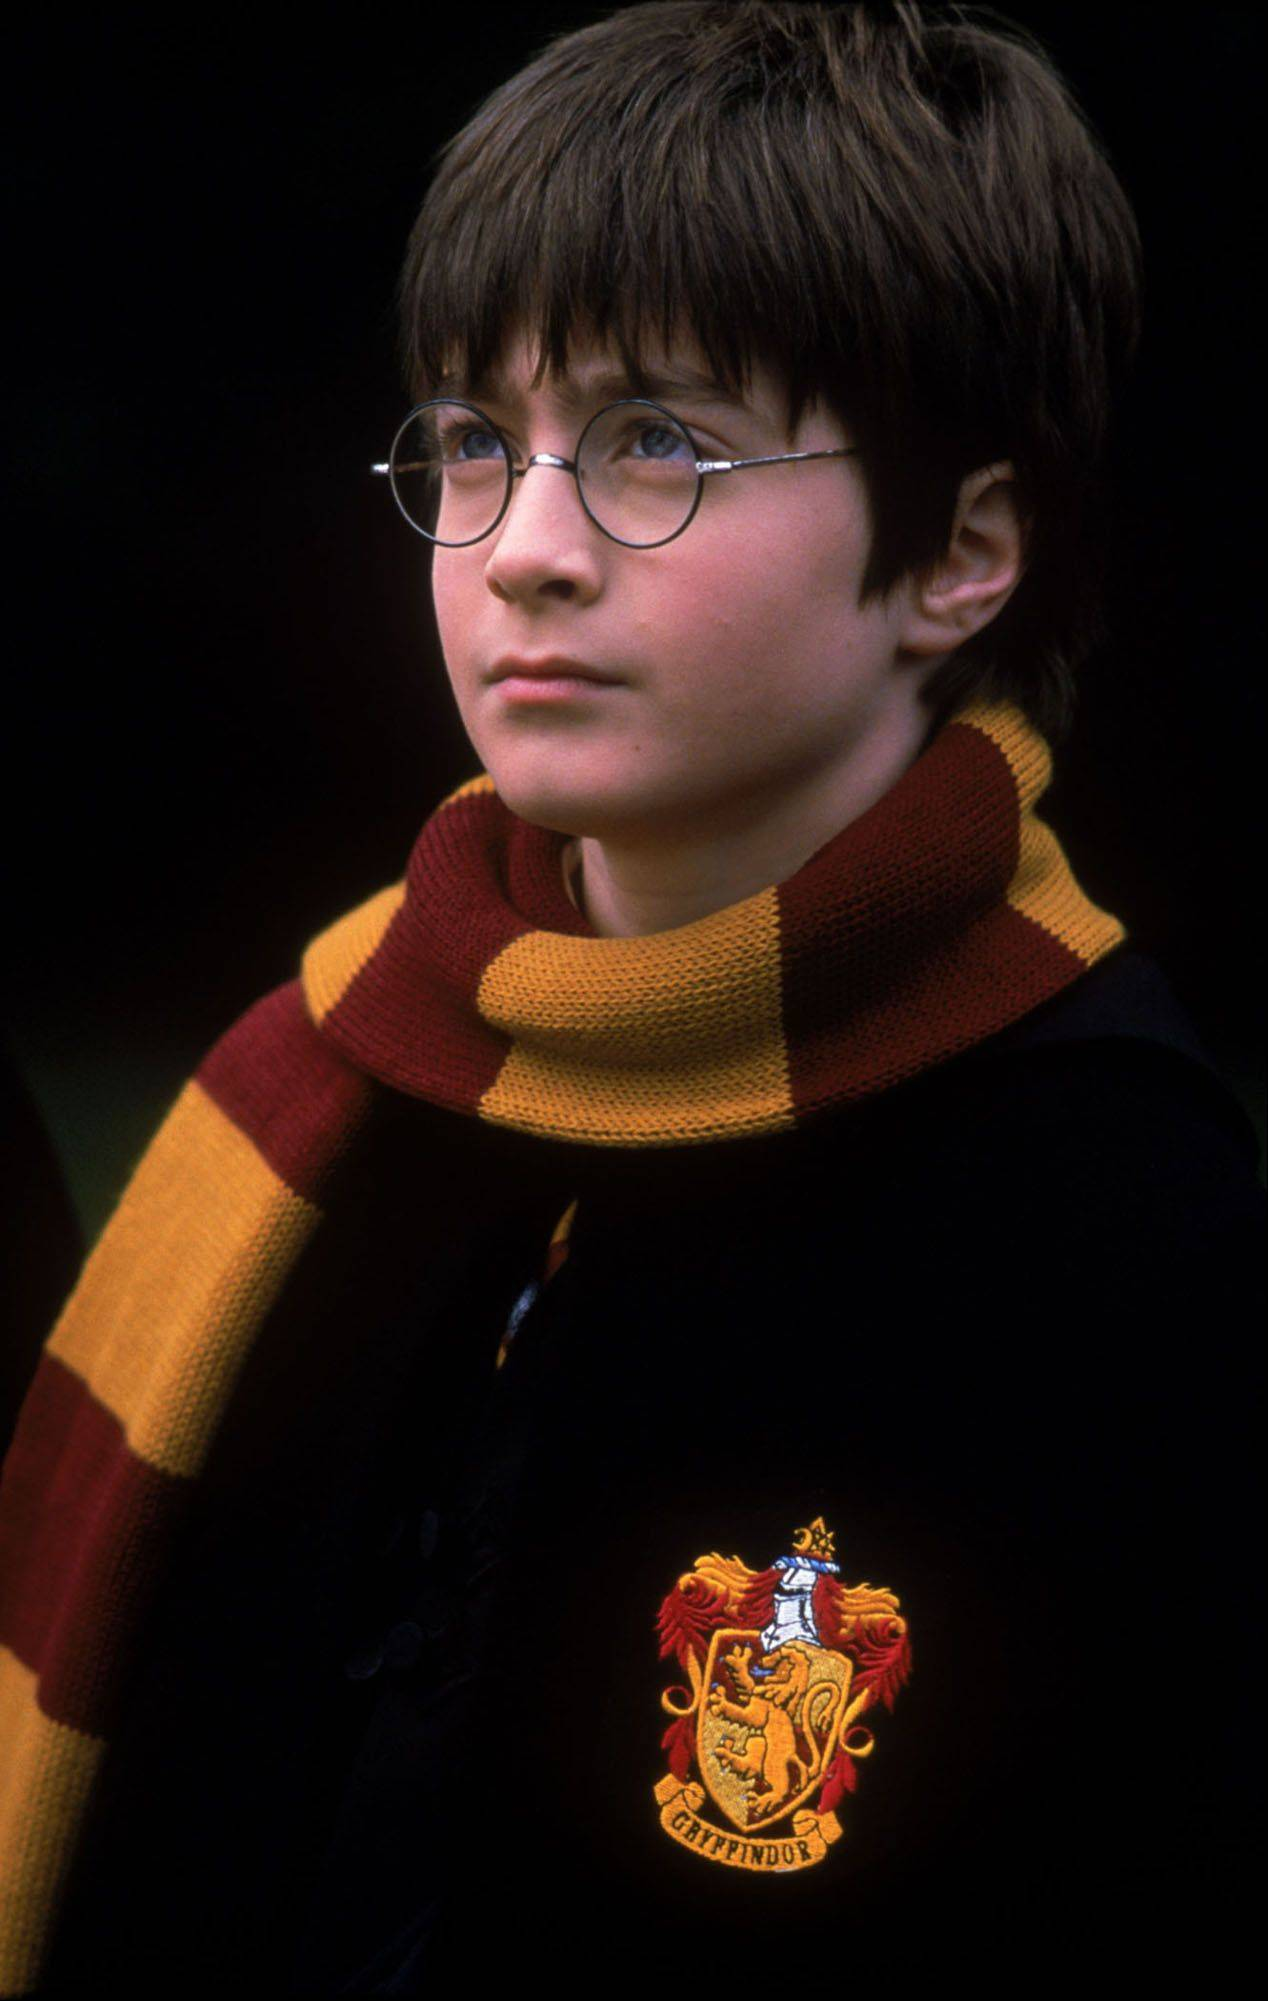 Over the past decade, fans have watched Harry Potter -- and star Daniel Radcliffe -- grow from a boy to a young man.